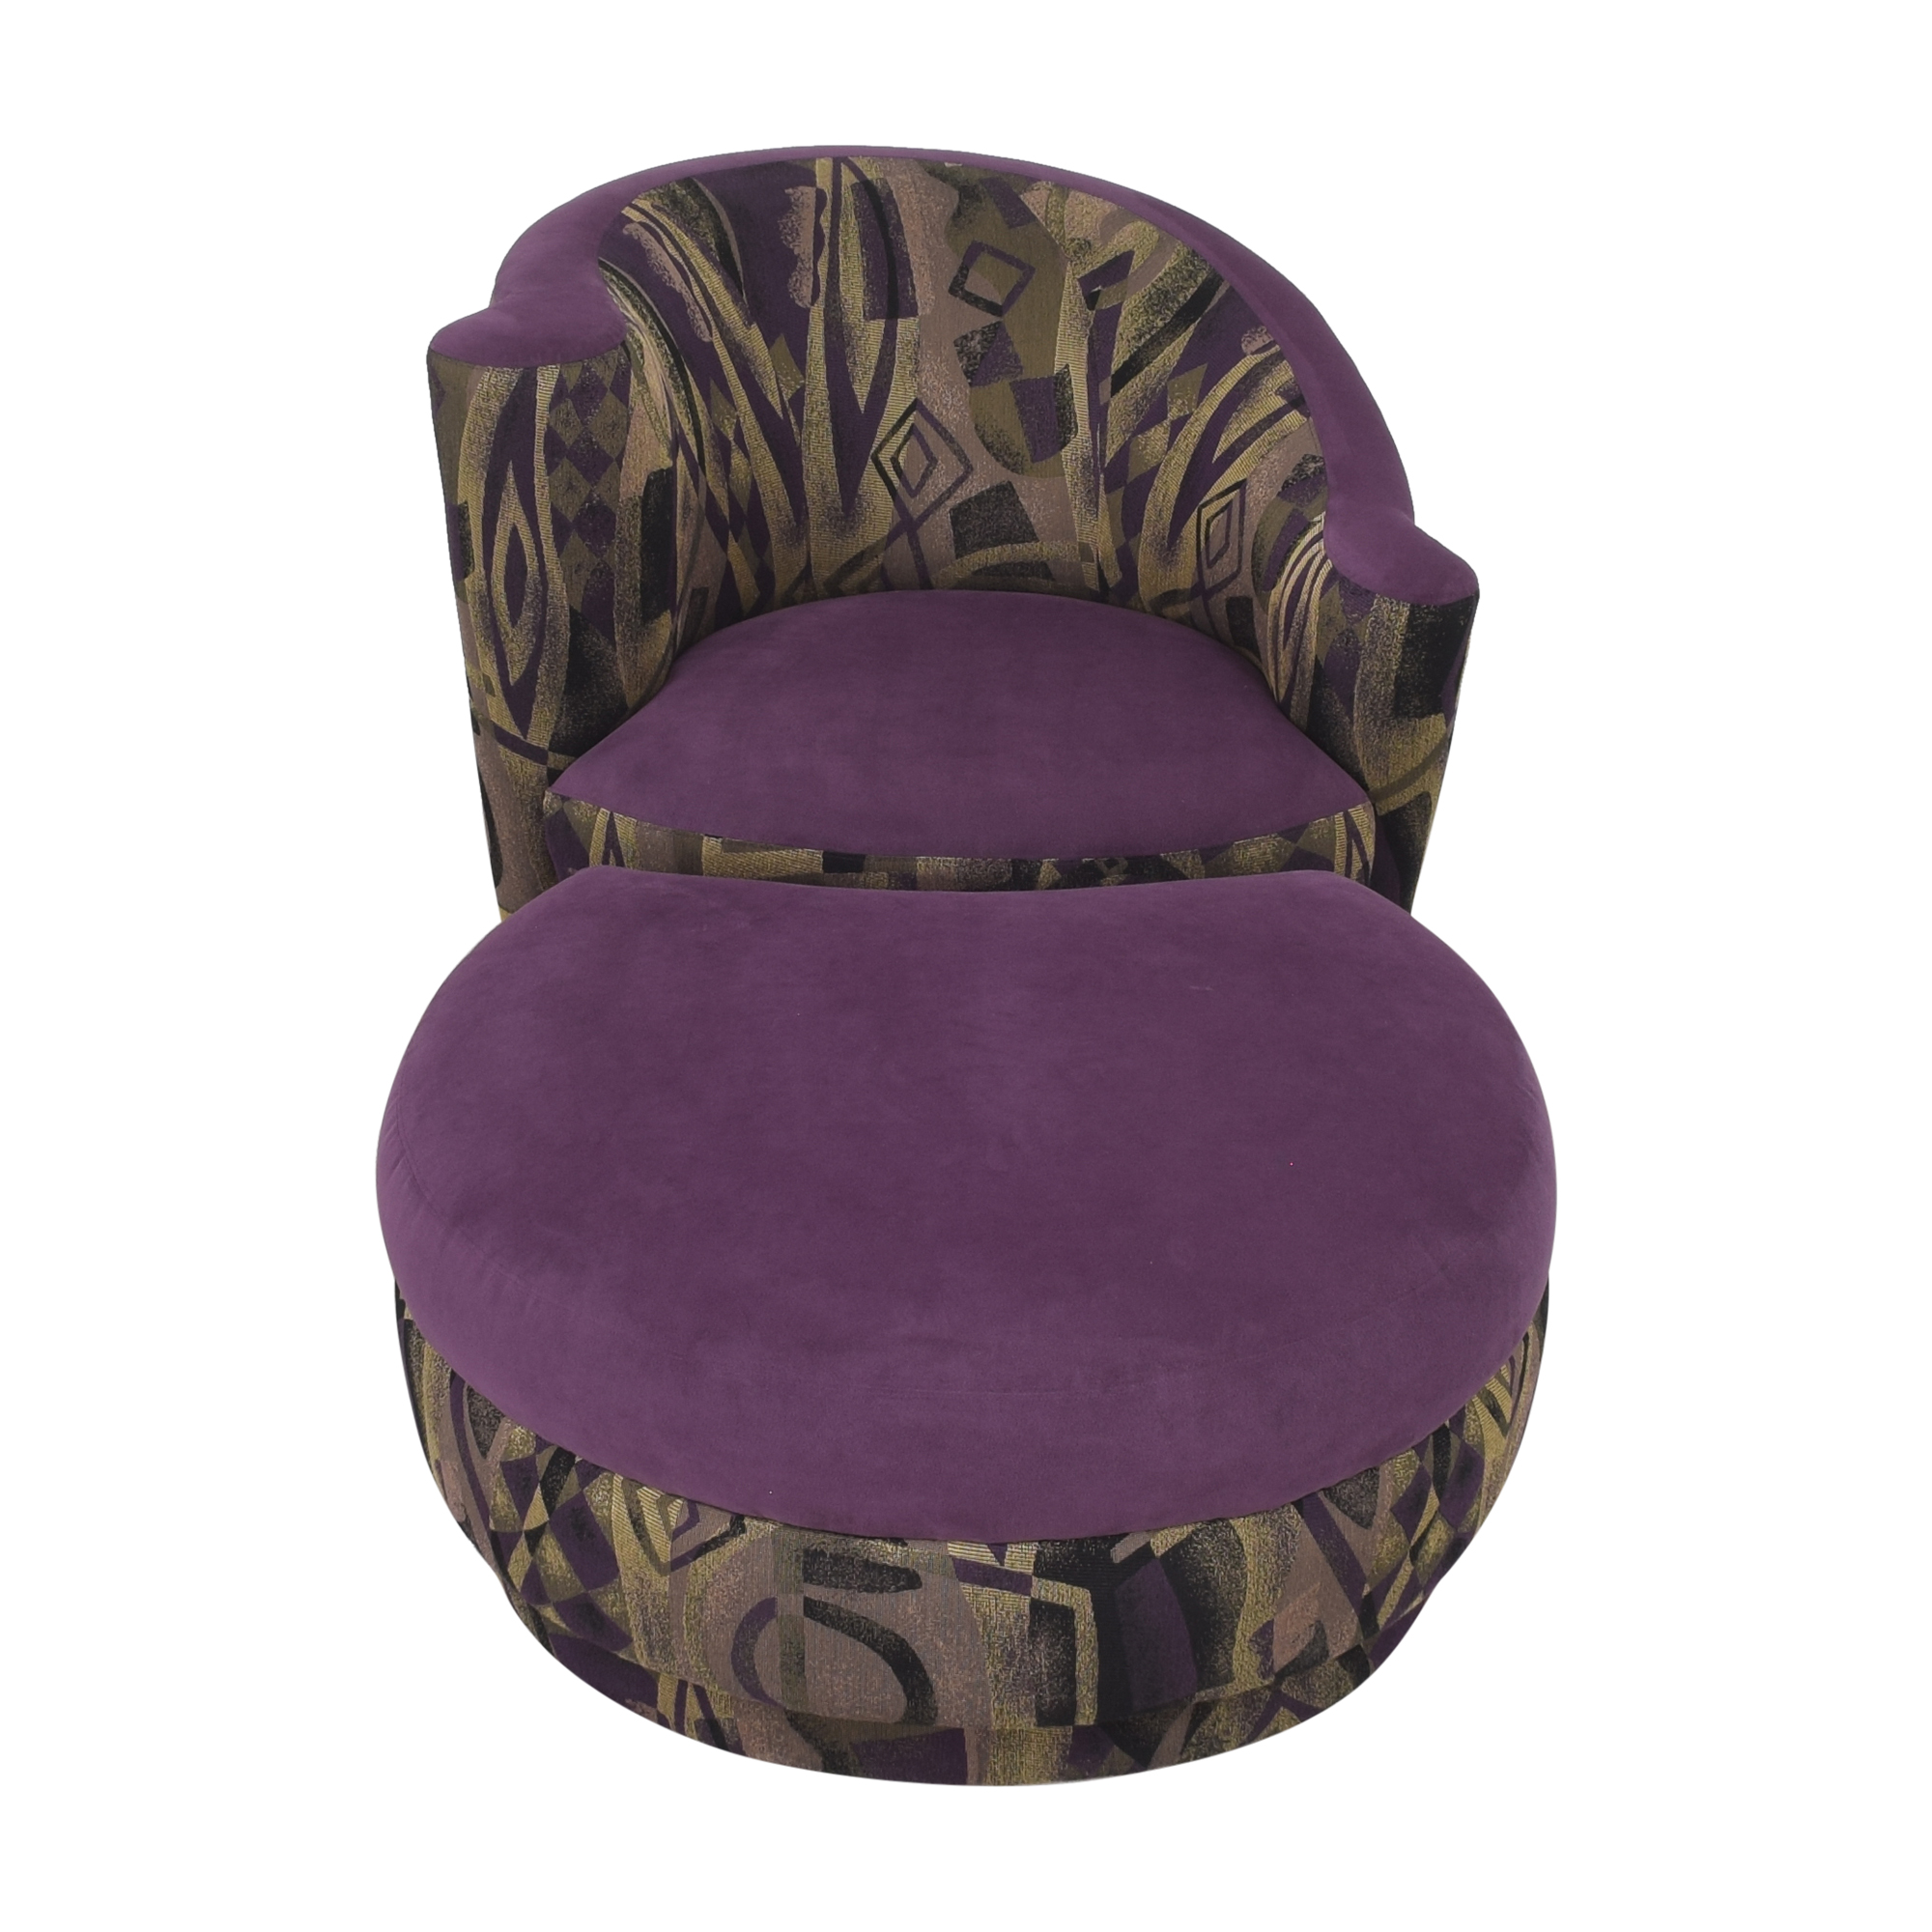 Weiman Weiman Nautilus Lounge Chair and Ottoman second hand